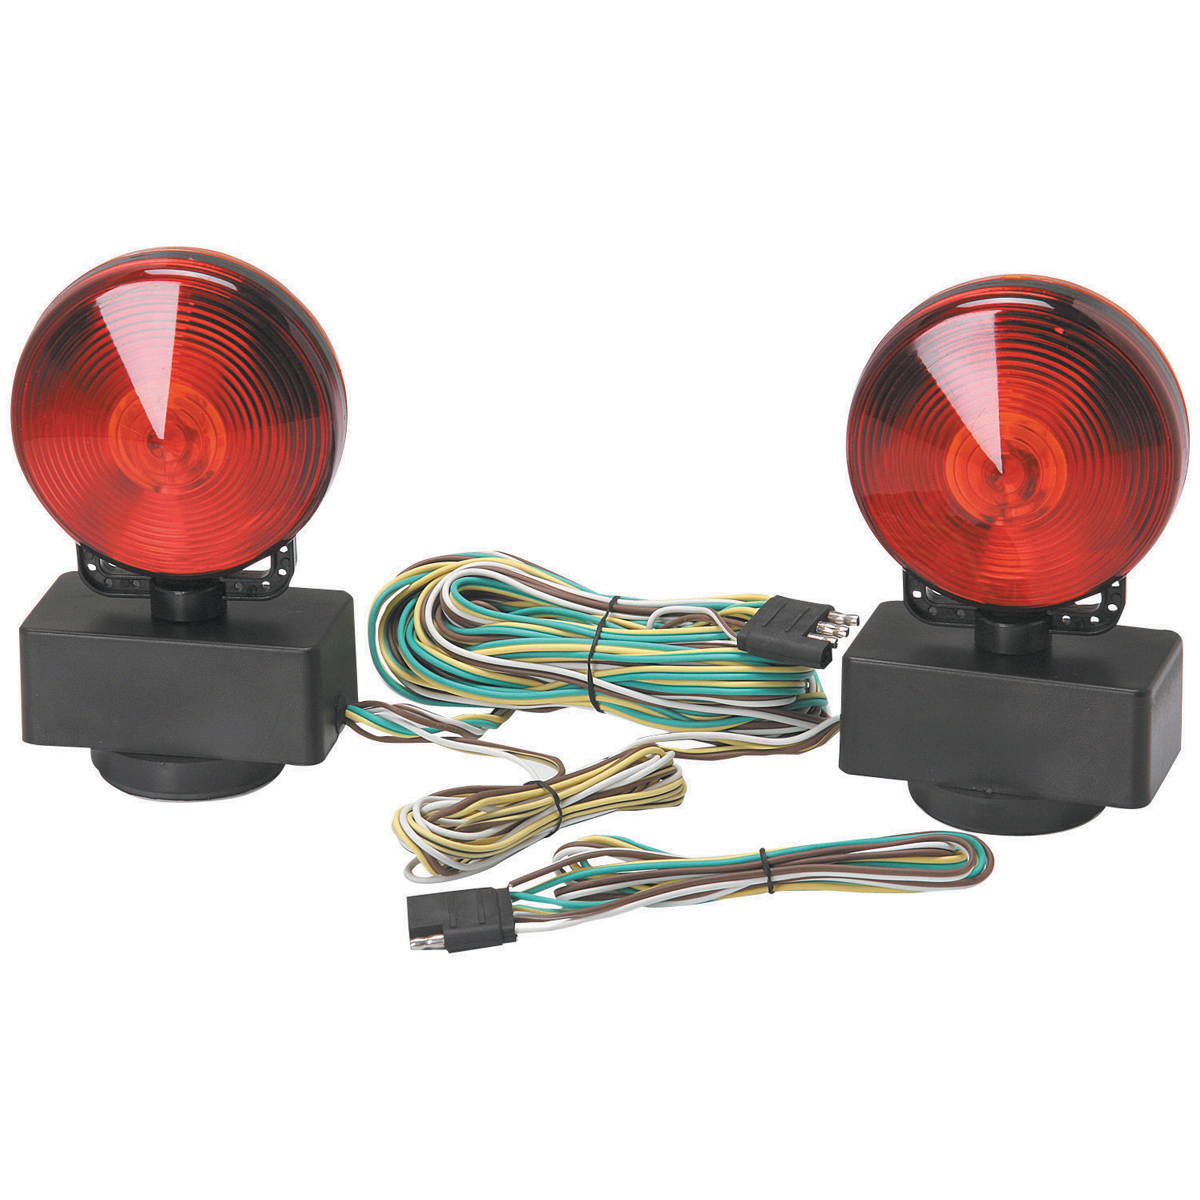 12 volt magnetic towing light kit rv tow light wiring magnetic tow lights wiring diagram #16